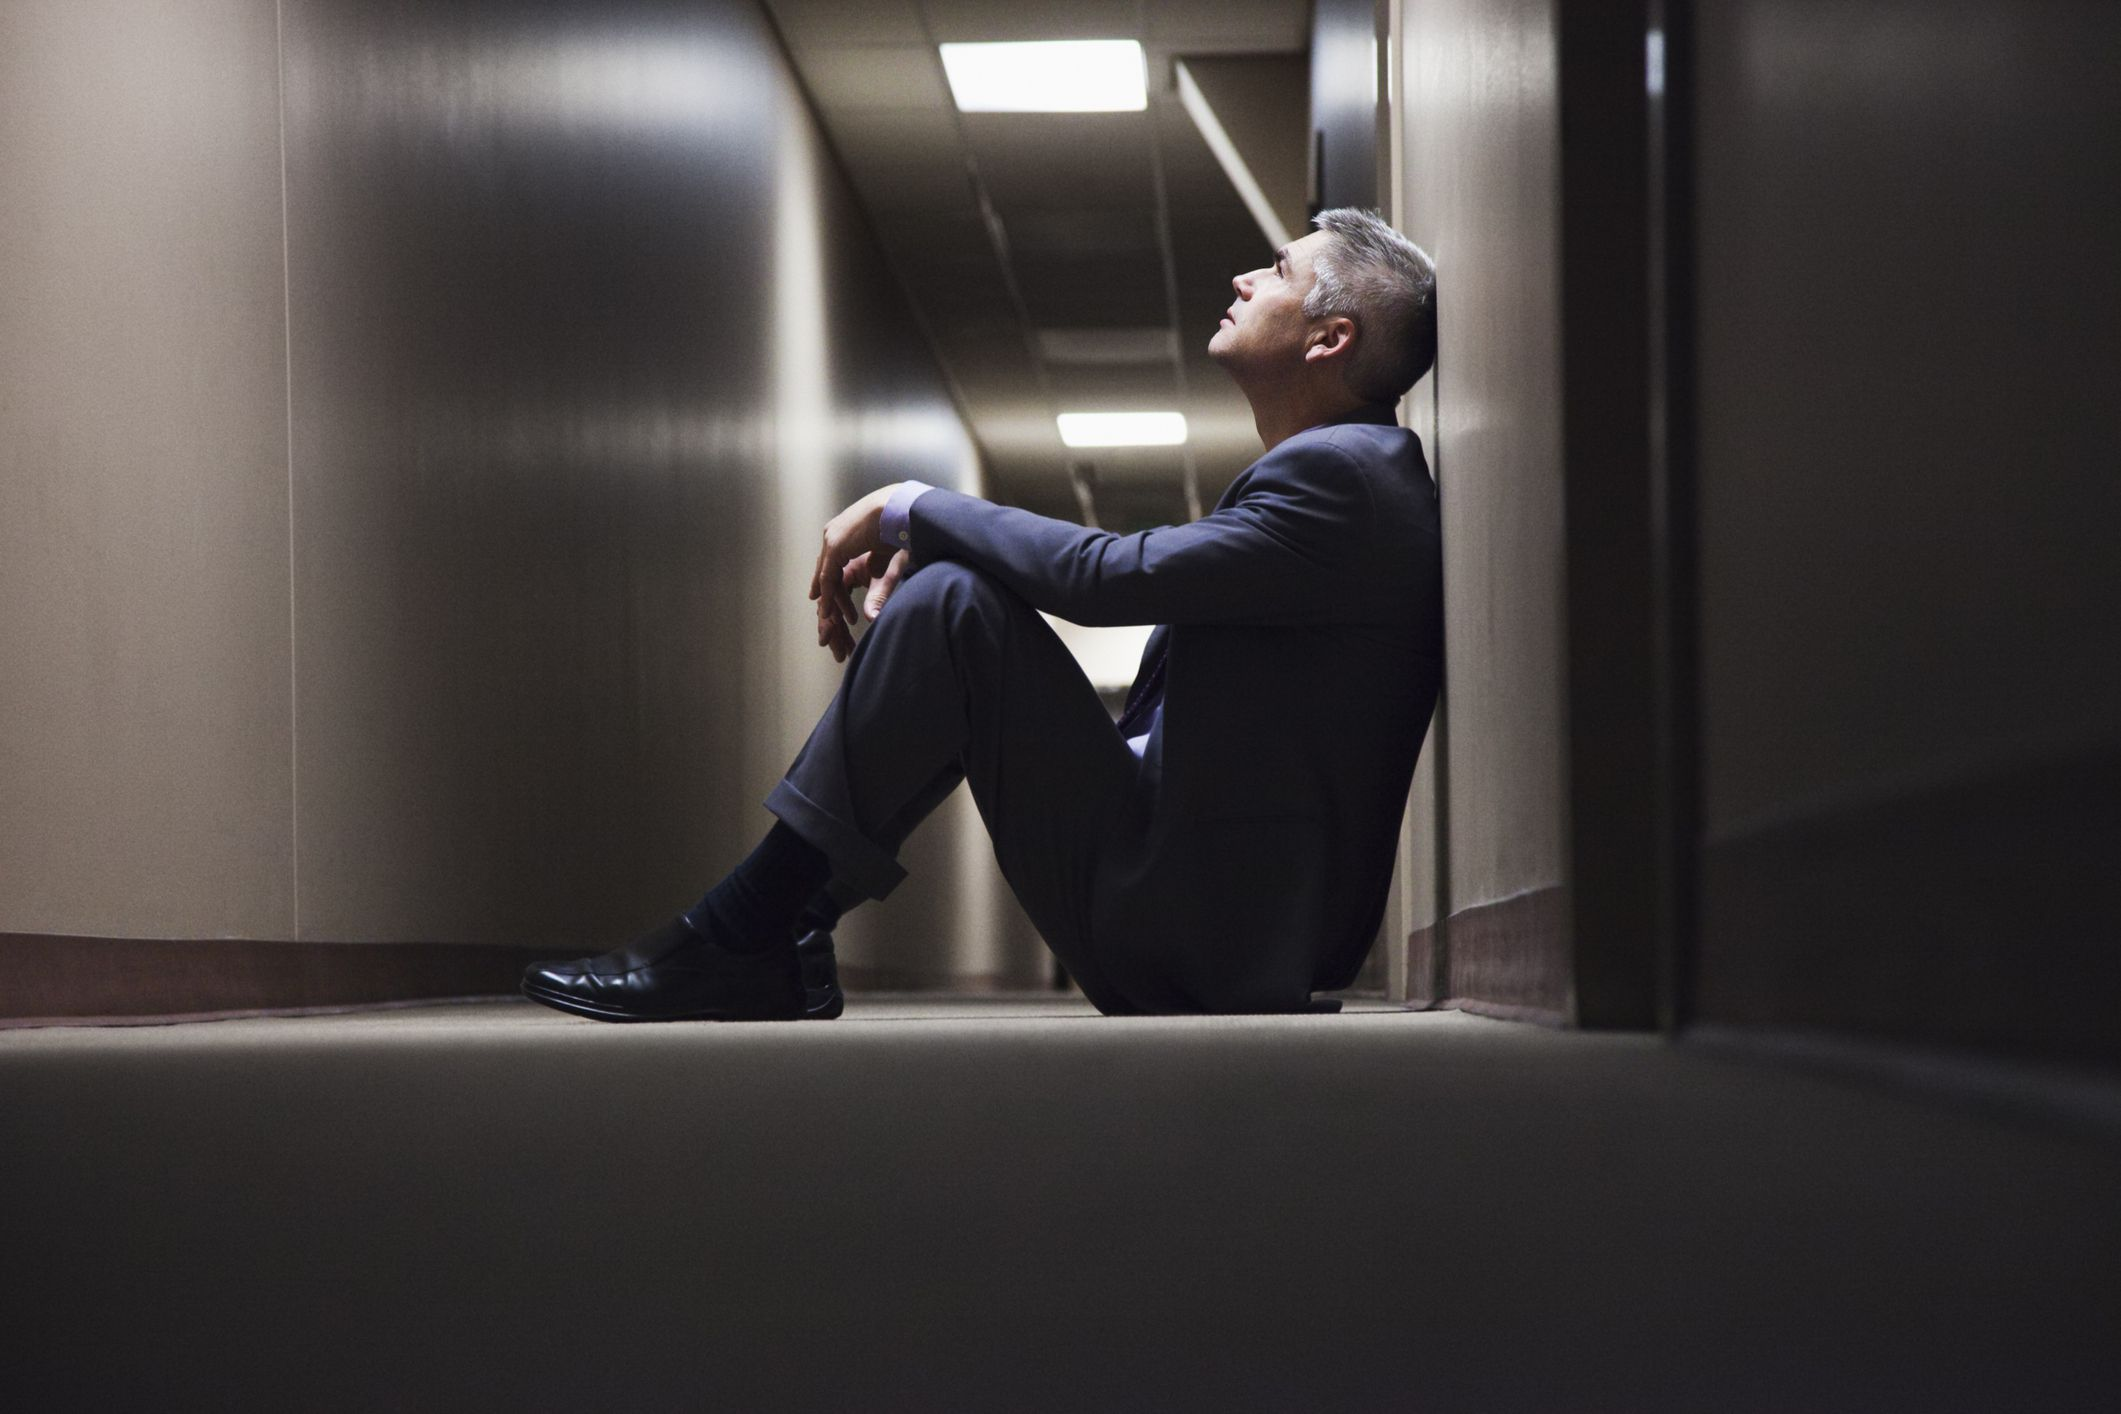 Questions to Ask If You Are Laid Off or Fired